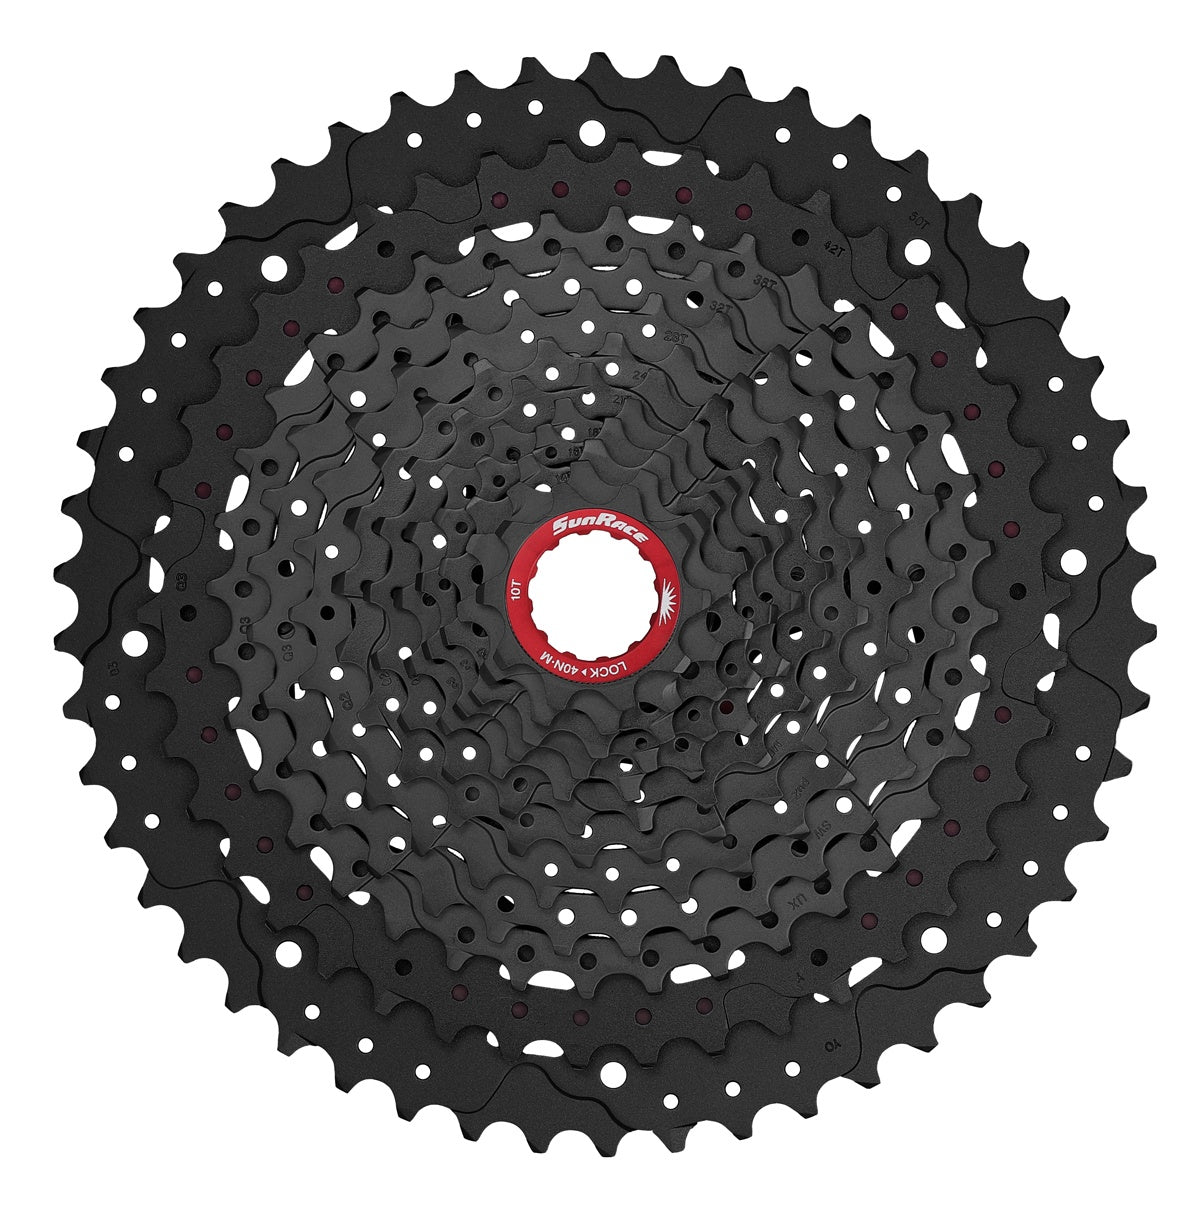 11 Speed XD Cassette 10-42